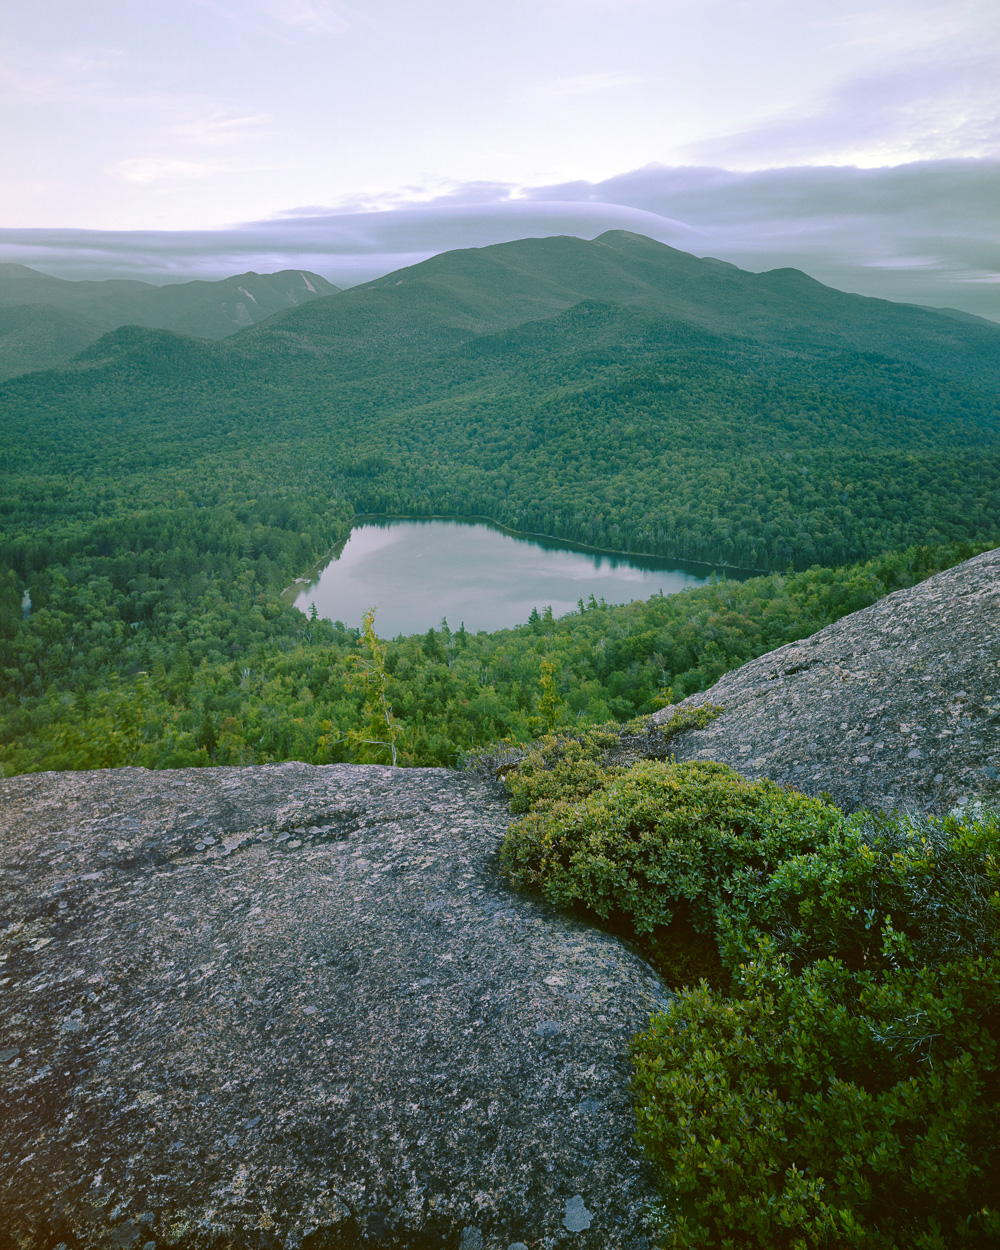 Algonquin and Heart Lake from Mount Jo, High Peaks Wilderness, NY. Portra 160, 4x5.